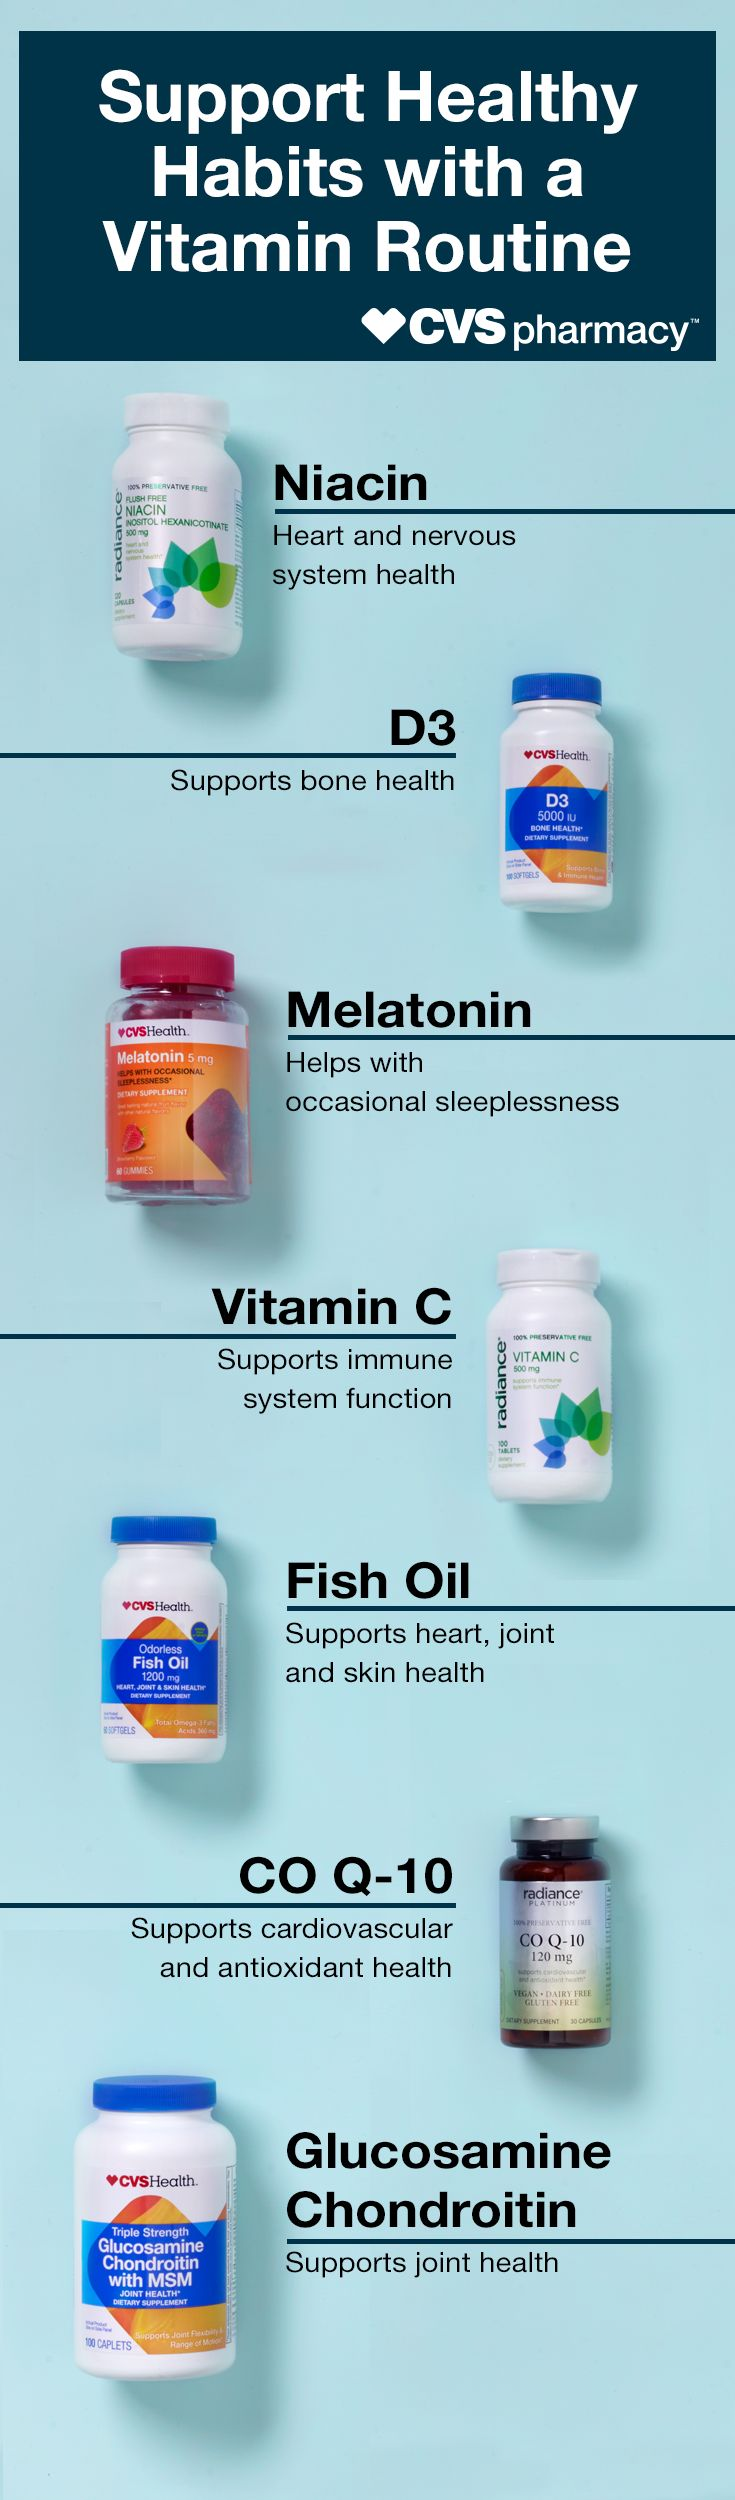 Looking to start a new vitamin routine but don't know where to start? We can help.